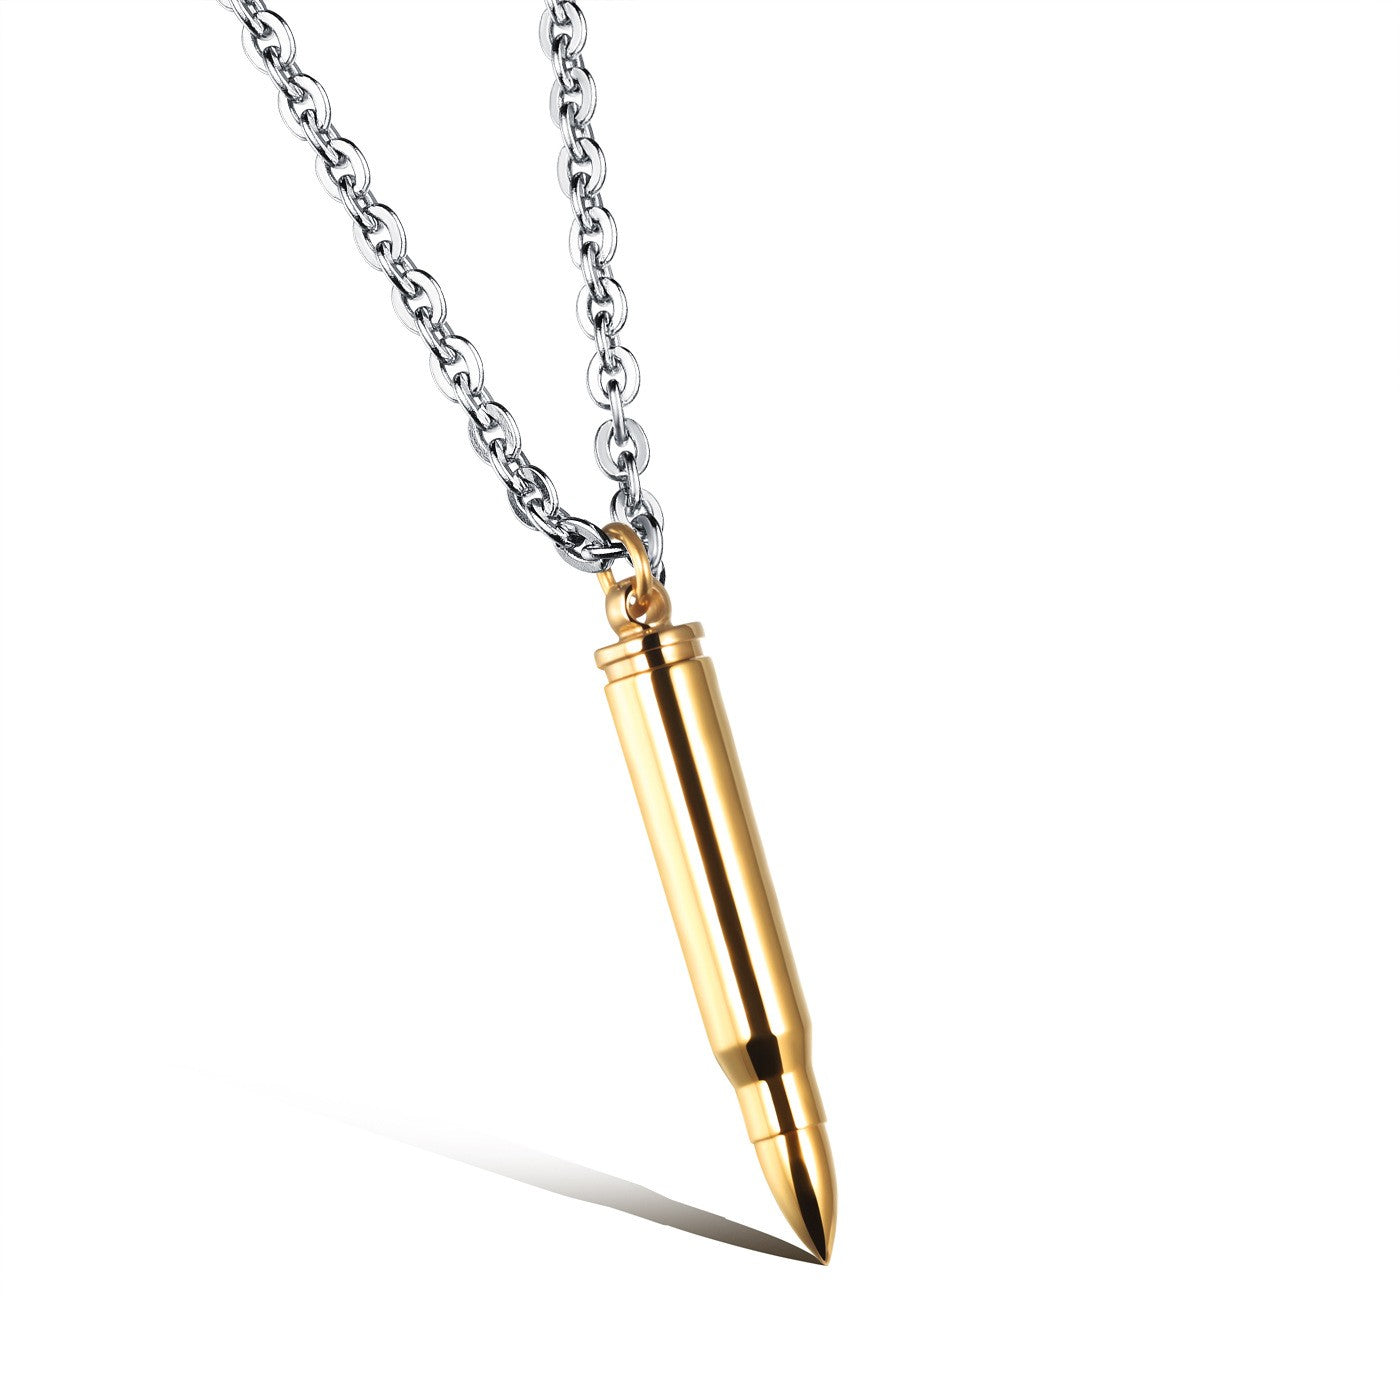 Attraction Necklace Men's Stainless Steel Bullet Pendant Necklace Silver/Black/Gold